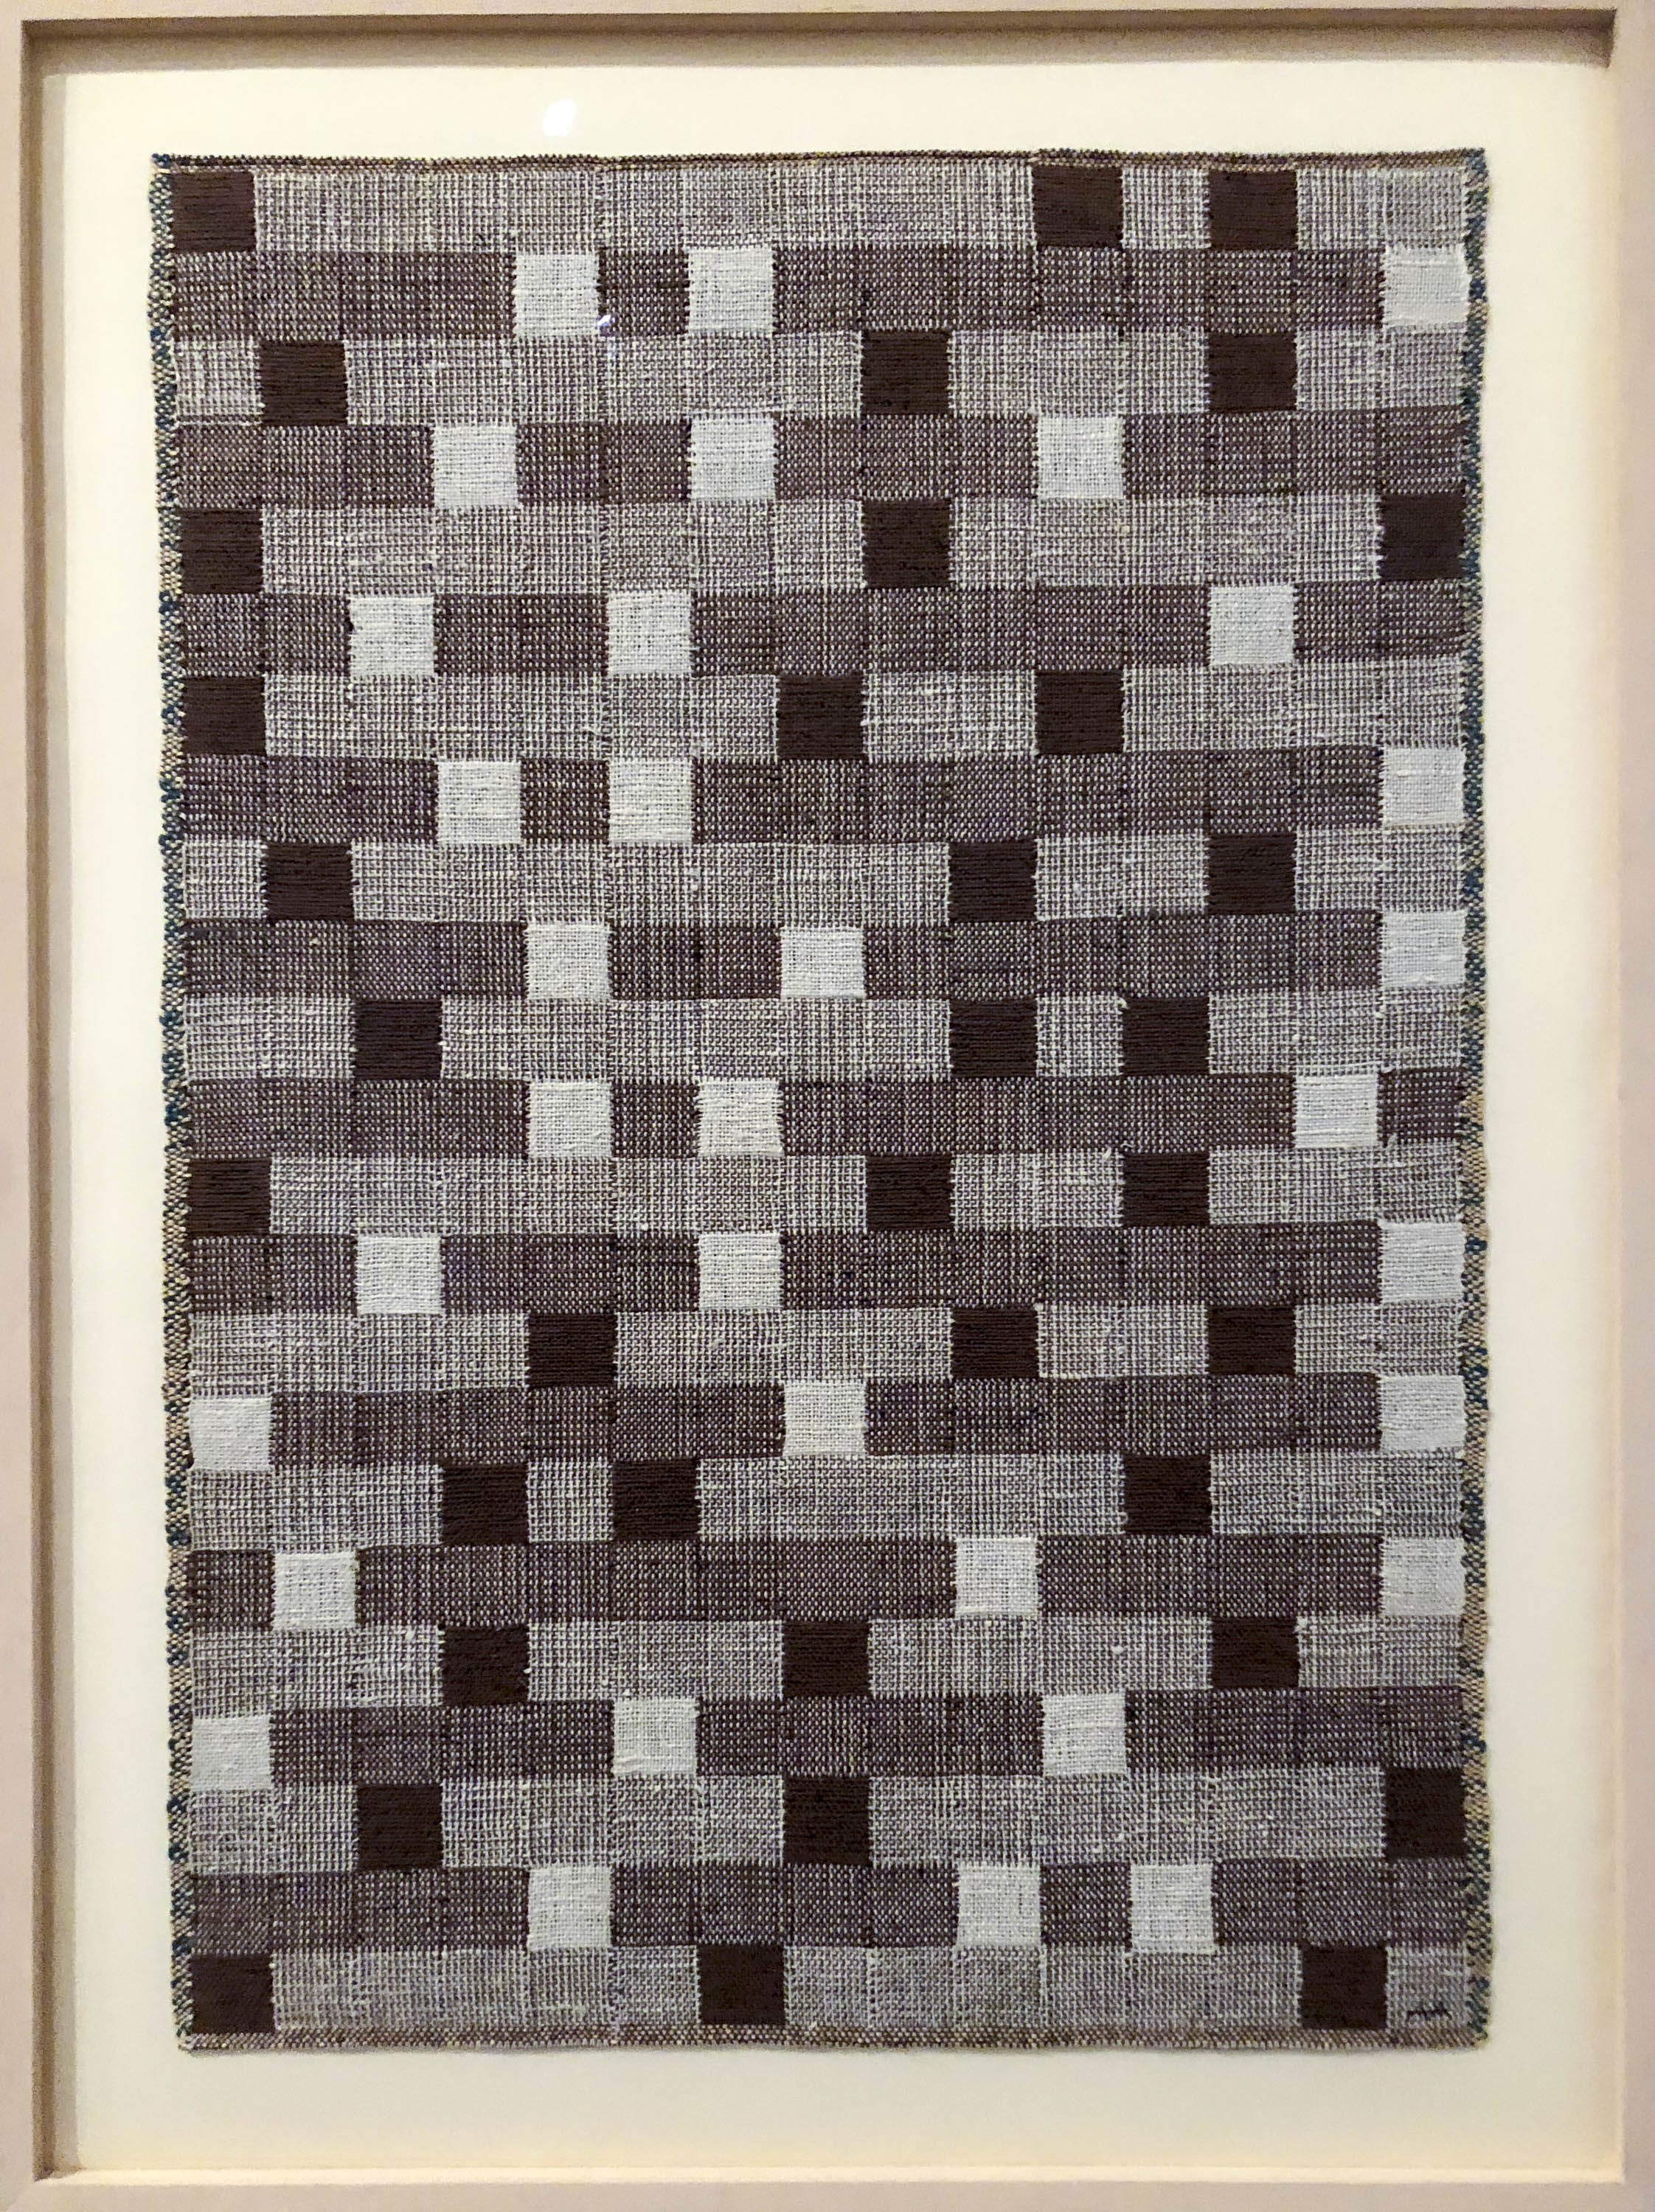 Anni Albers woven panel as seen at Tate. Black and white yarn gives linear but irregular placement of squares and rectangles